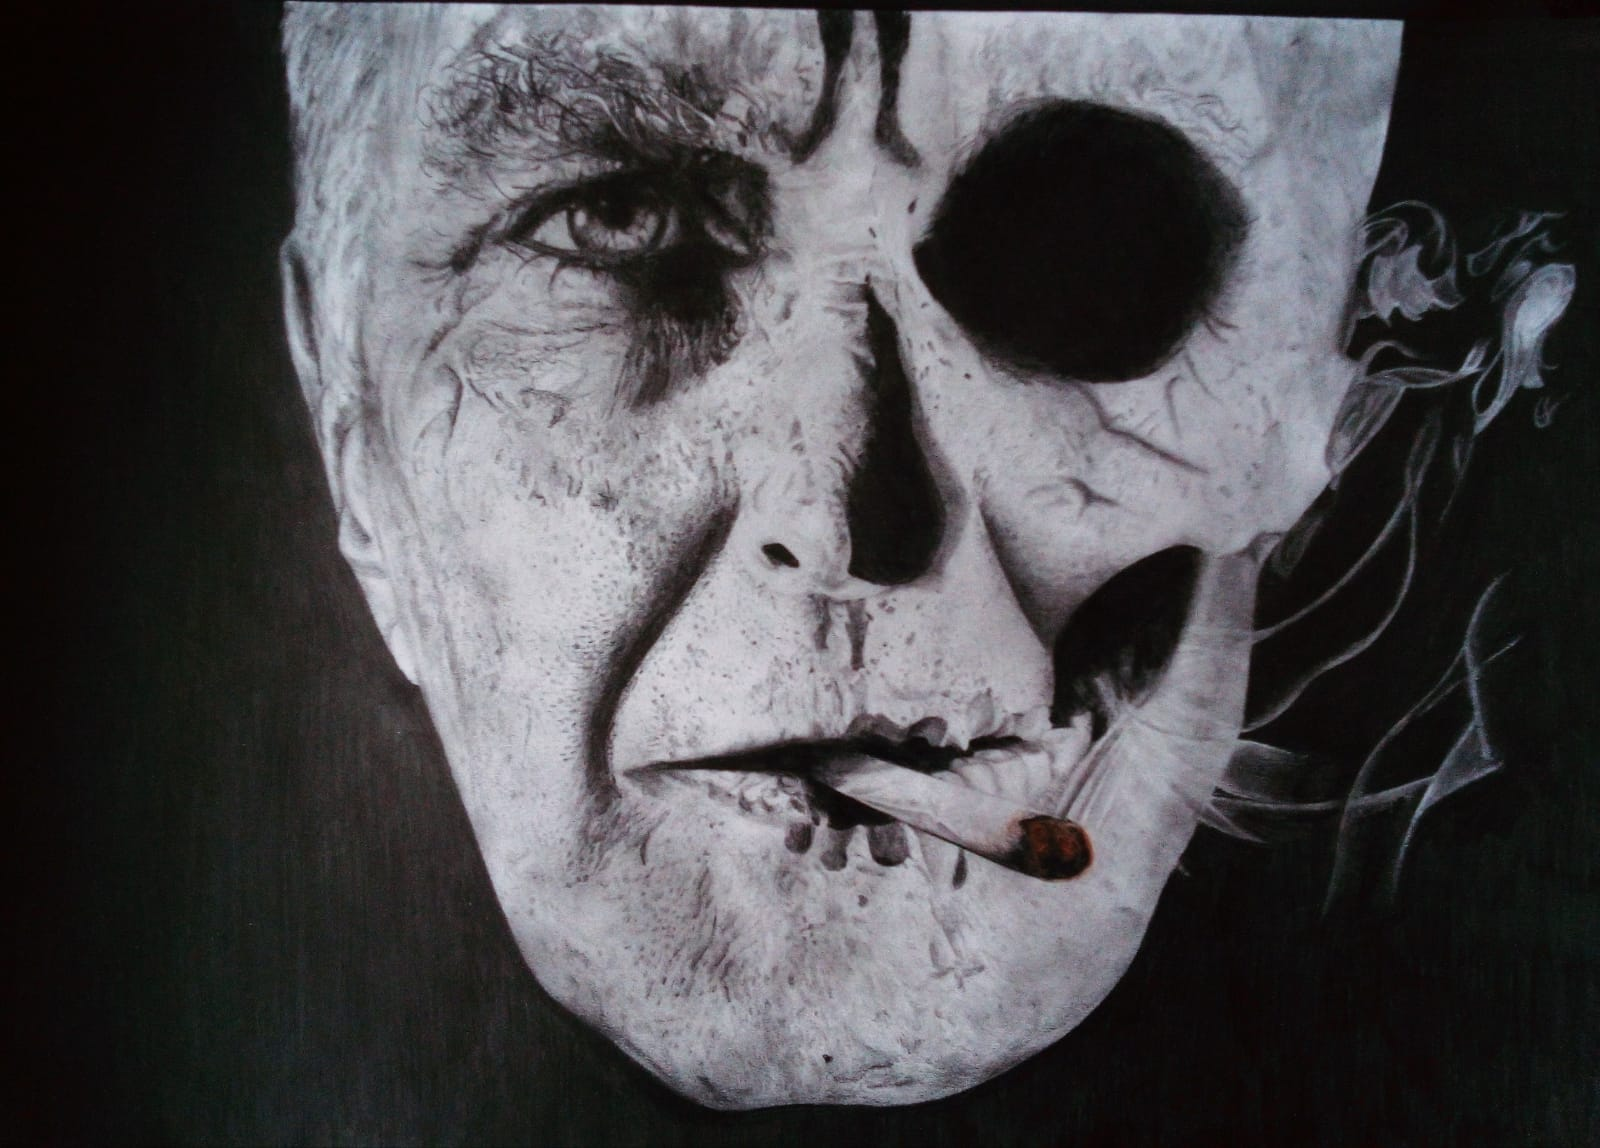 Addicted to Death - drawing by Elisa Neri